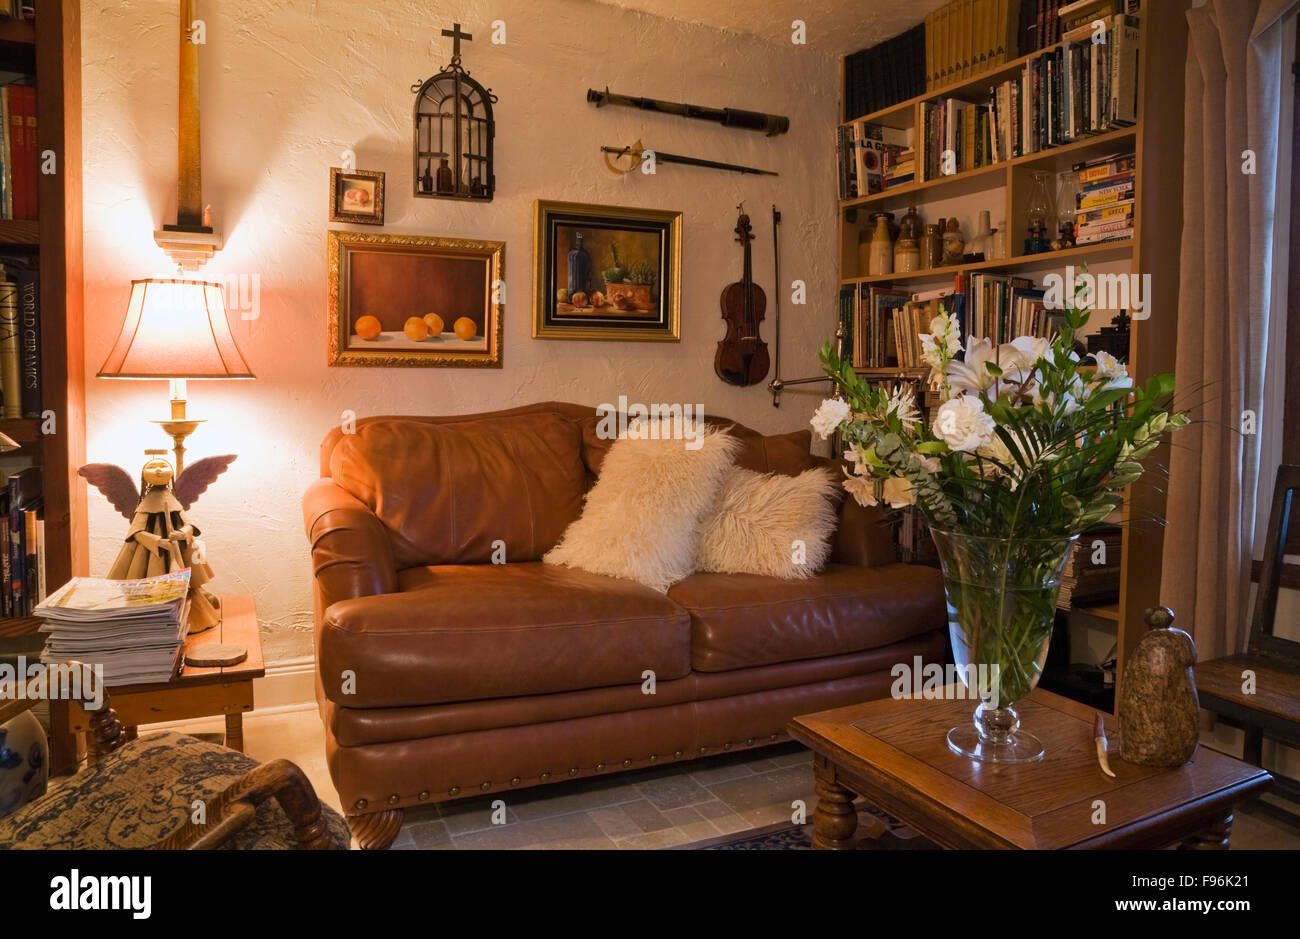 Awe Inspiring Brown Leather Sofa In The Reading Room Inside An Old 1809 Spiritservingveterans Wood Chair Design Ideas Spiritservingveteransorg